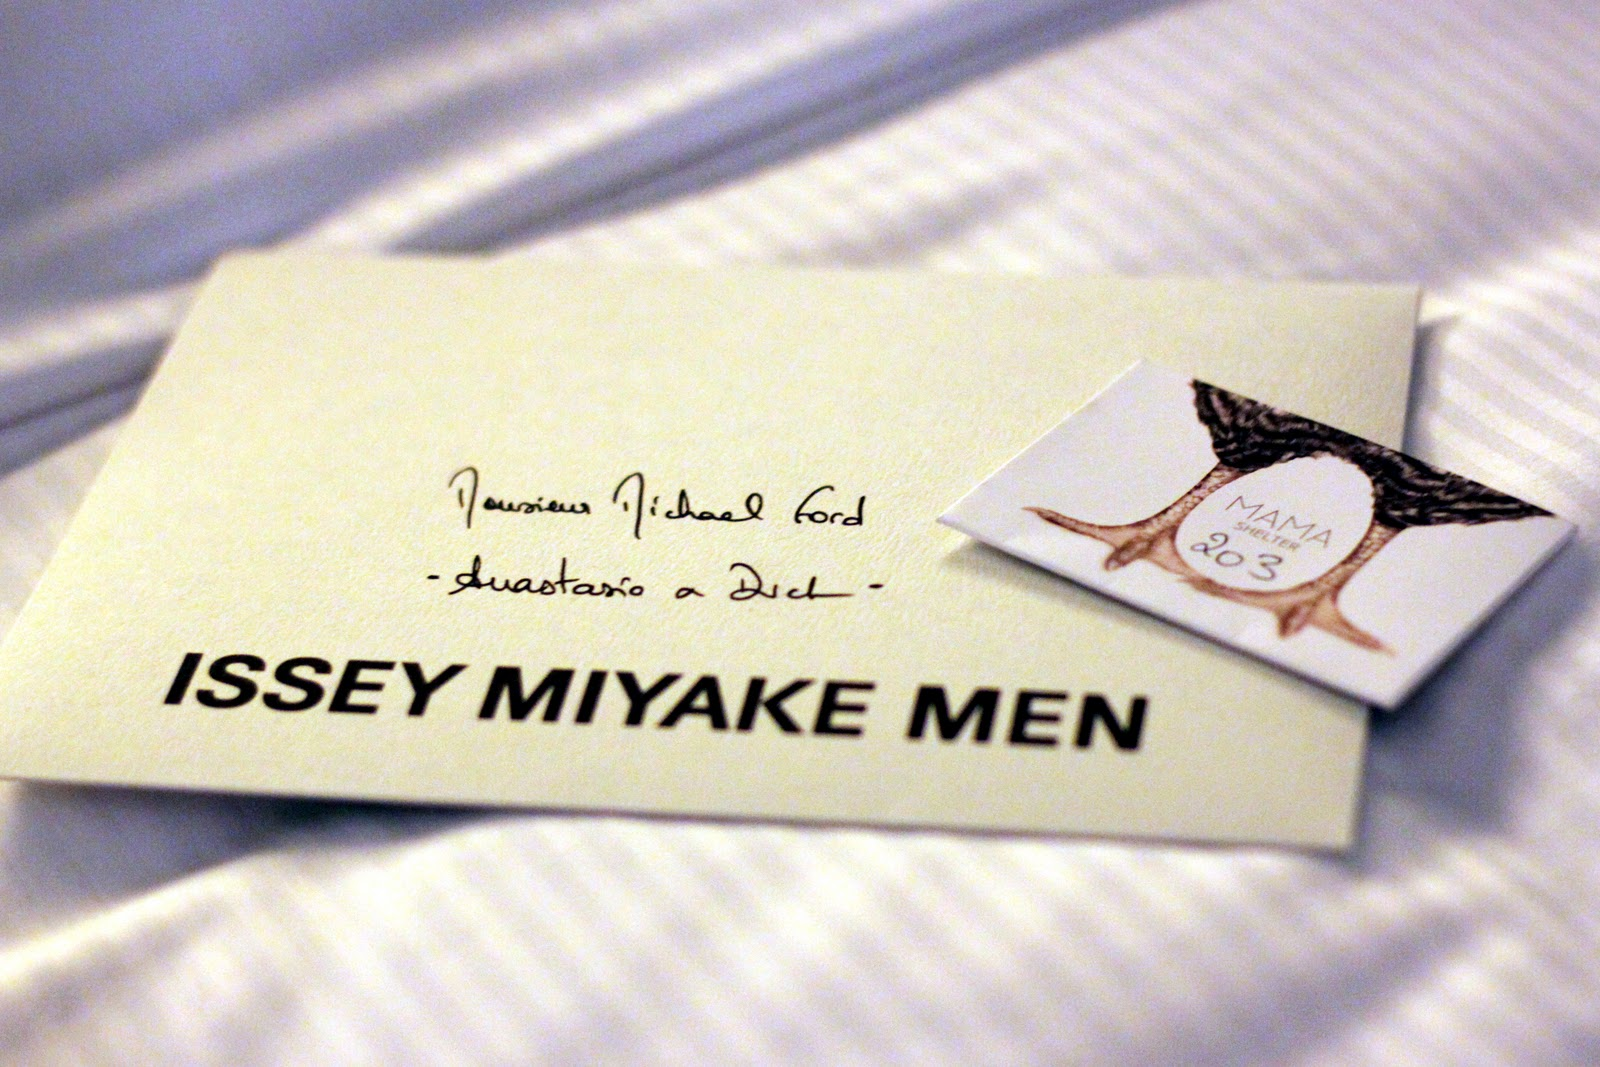 Issey Miyake menswear invitation